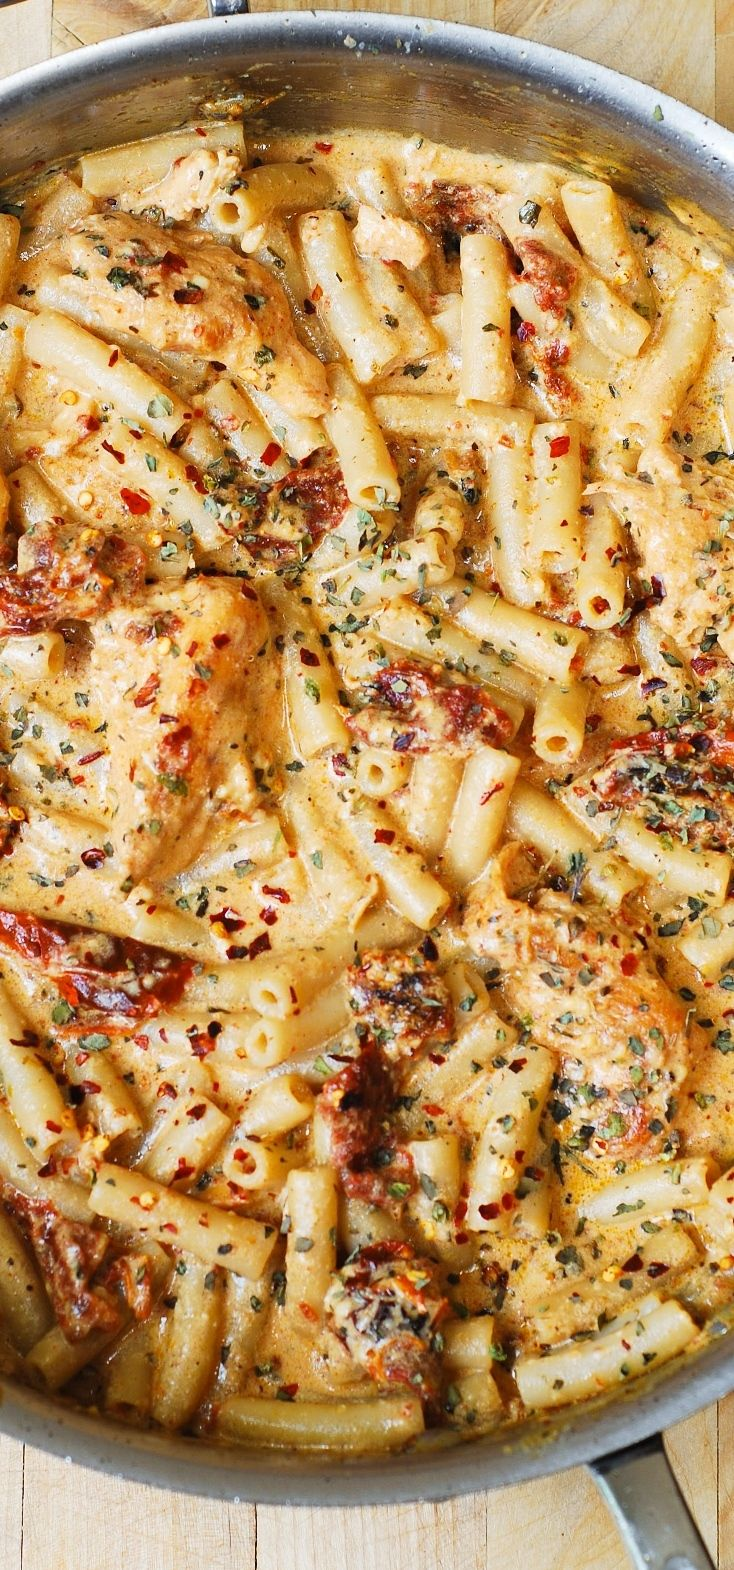 Chicken breast sautéed with sun-dried tomatoes and penne pasta in a creamy mozzarella cheese sauce seasoned with basil, crushed red pepper flakes. If you love pasta, if you love Italian food – you'll LOVE this recipe!